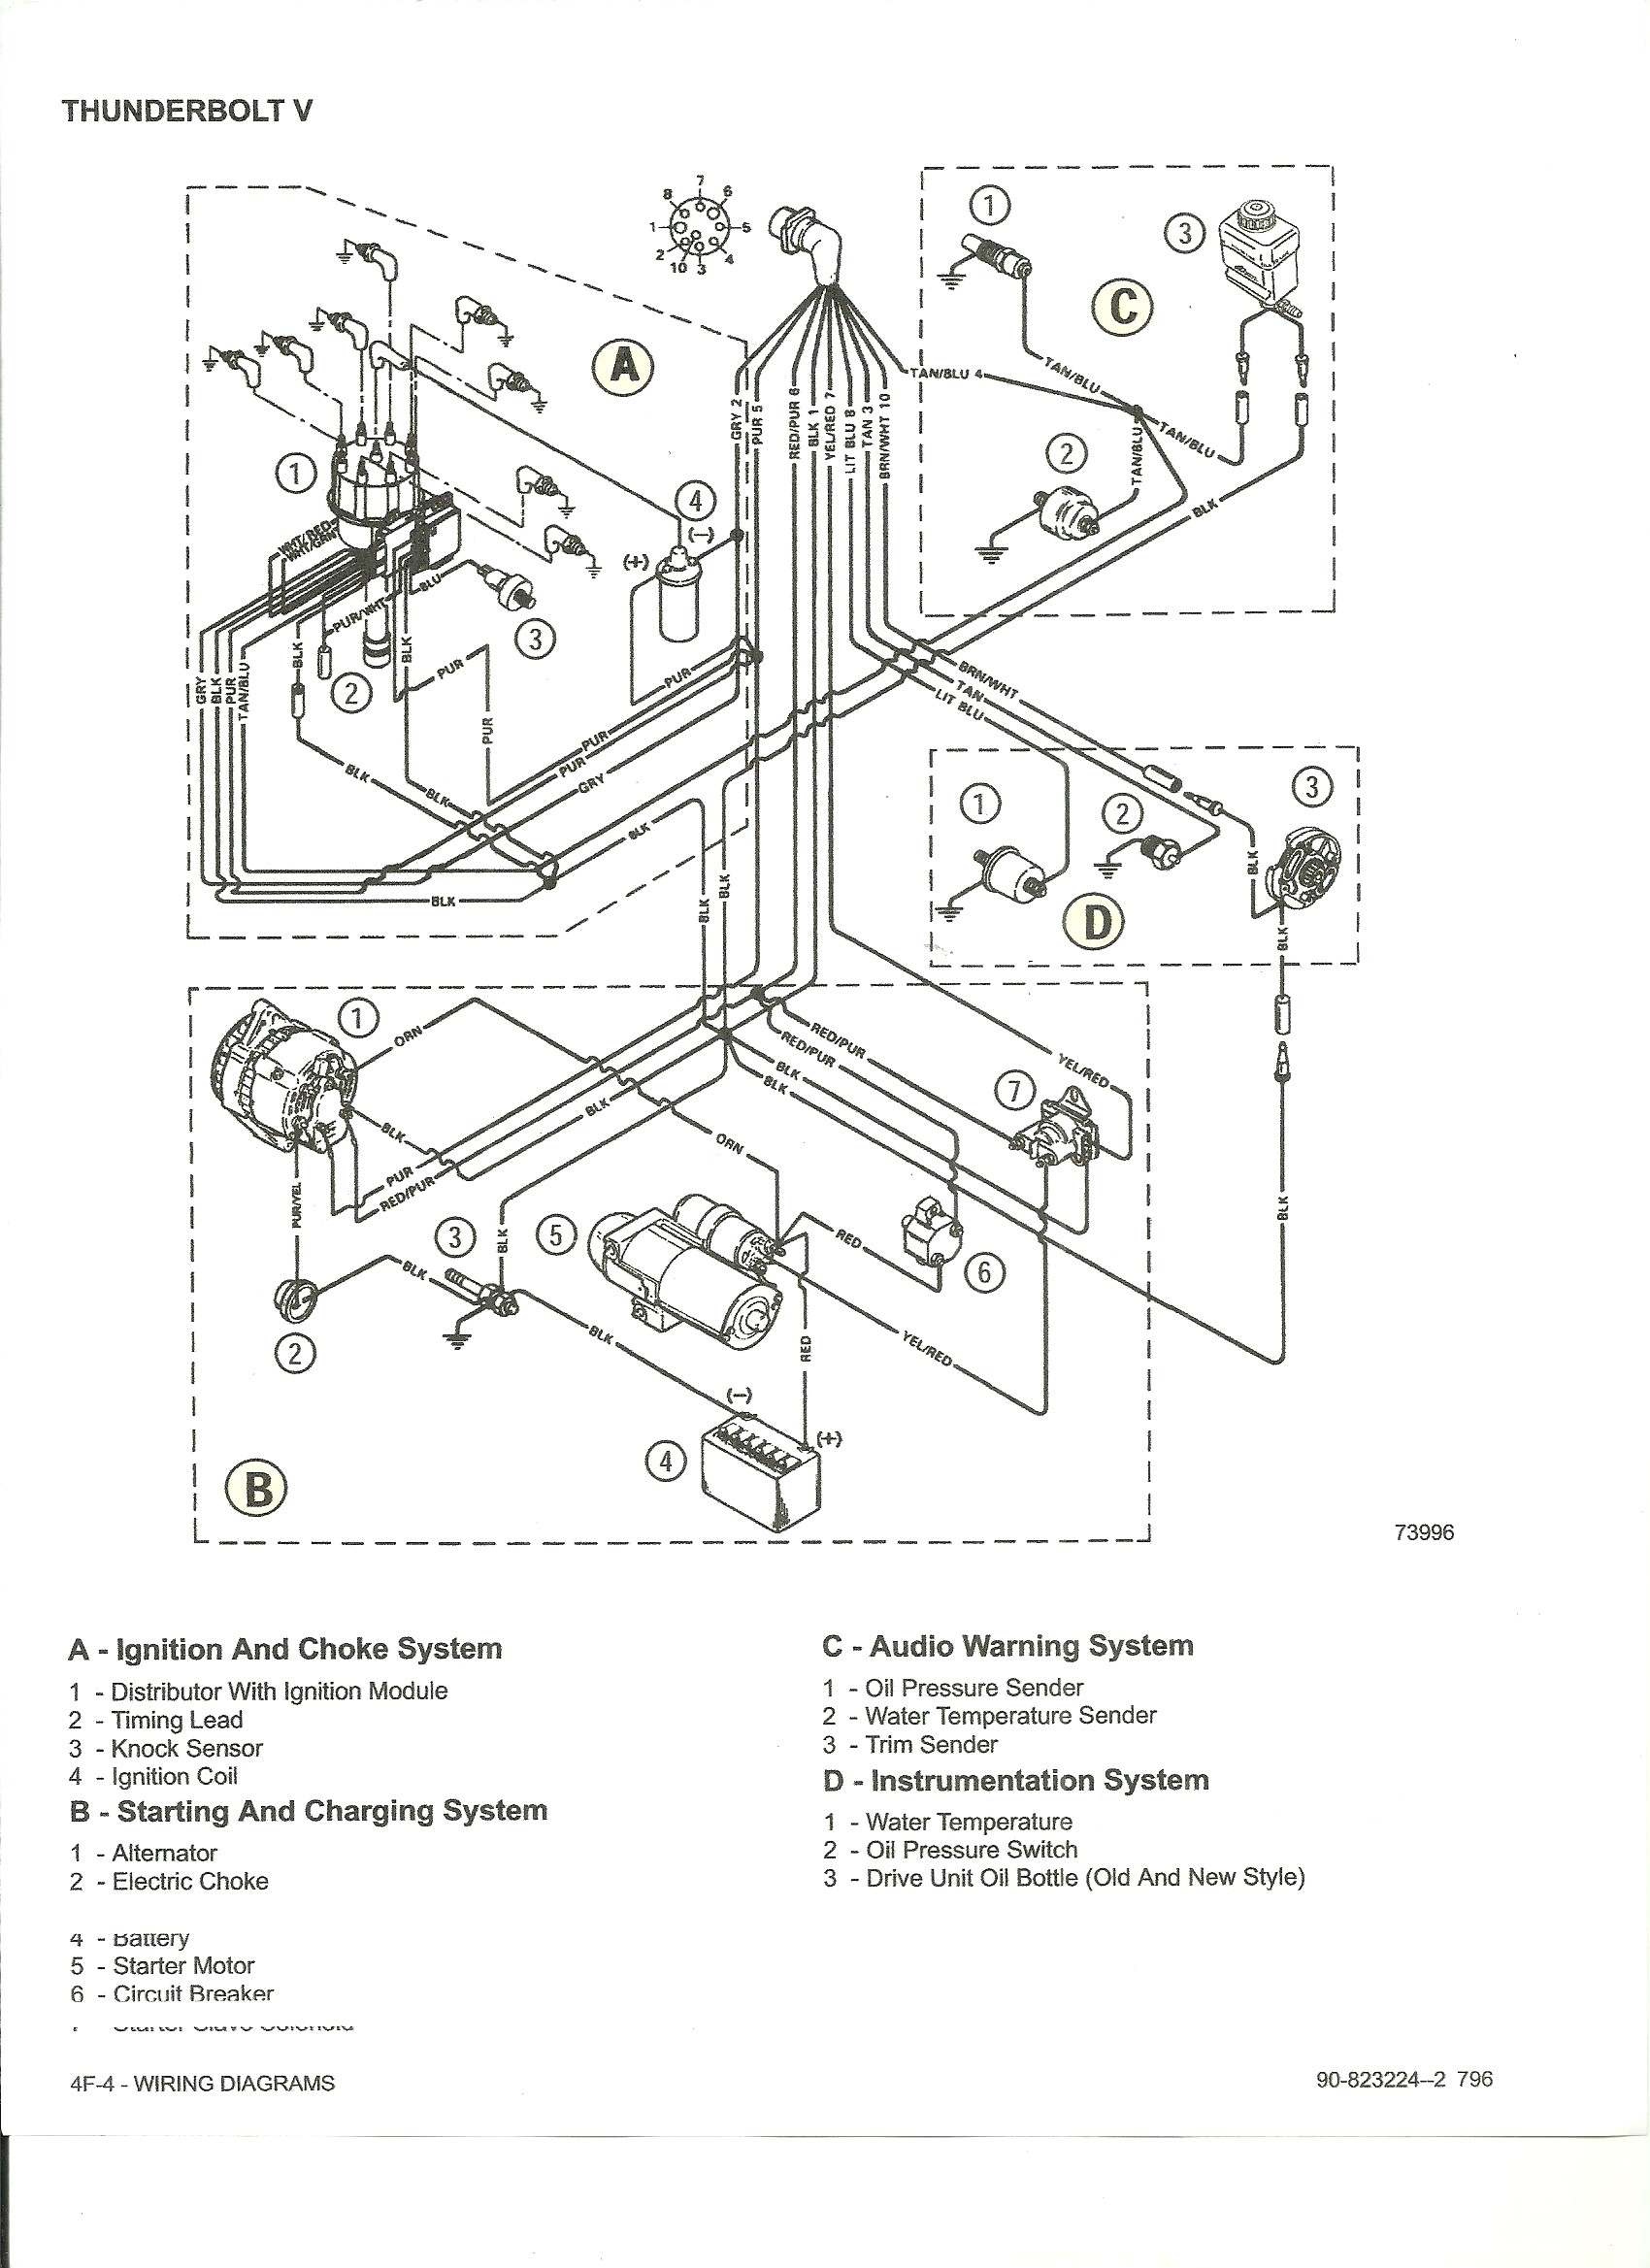 Wiring Diagram 1998 502 Omc